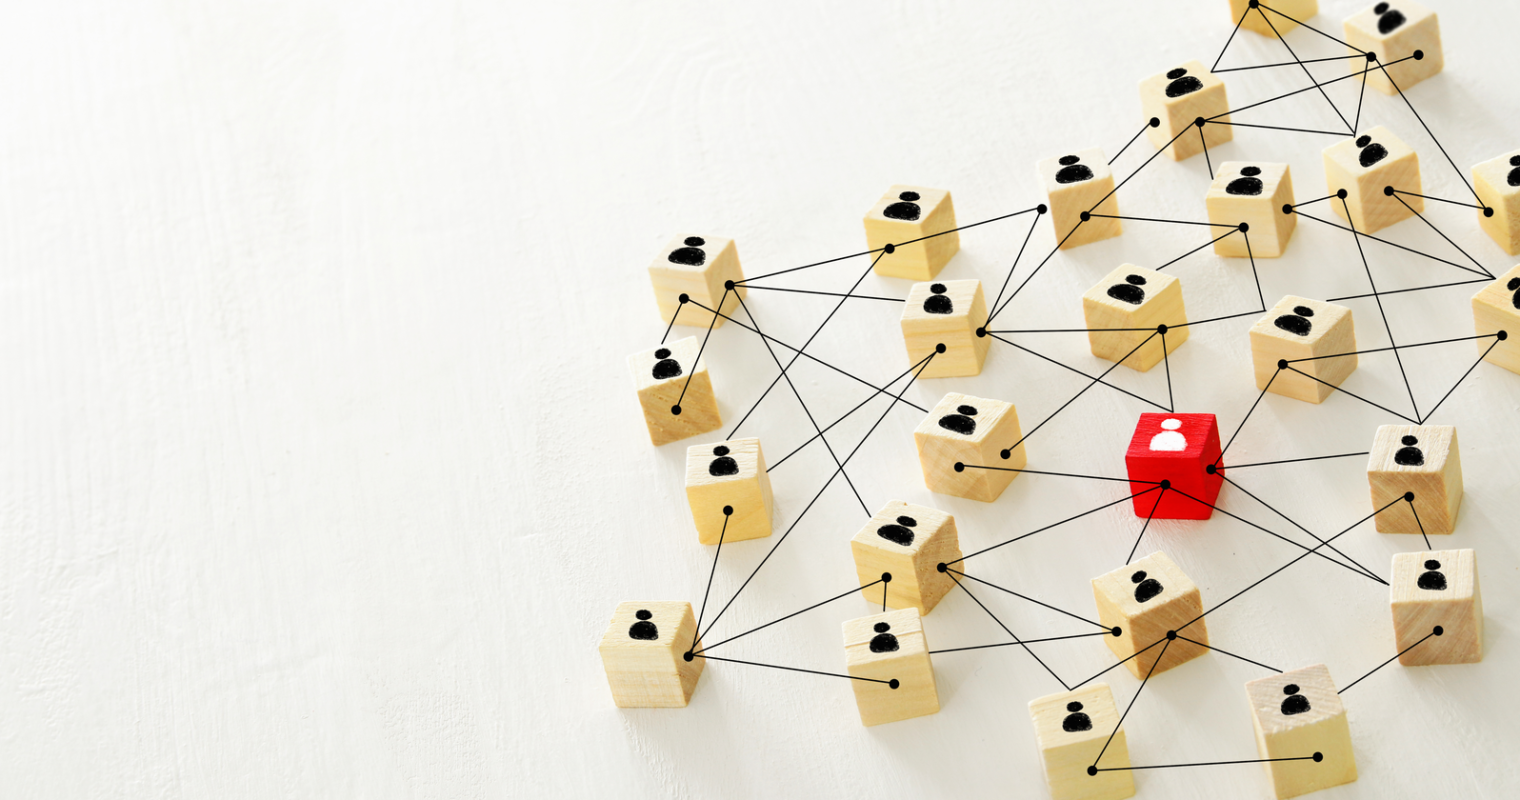 Could You Offer People a Reward or Discounts to Gain Backlinks?